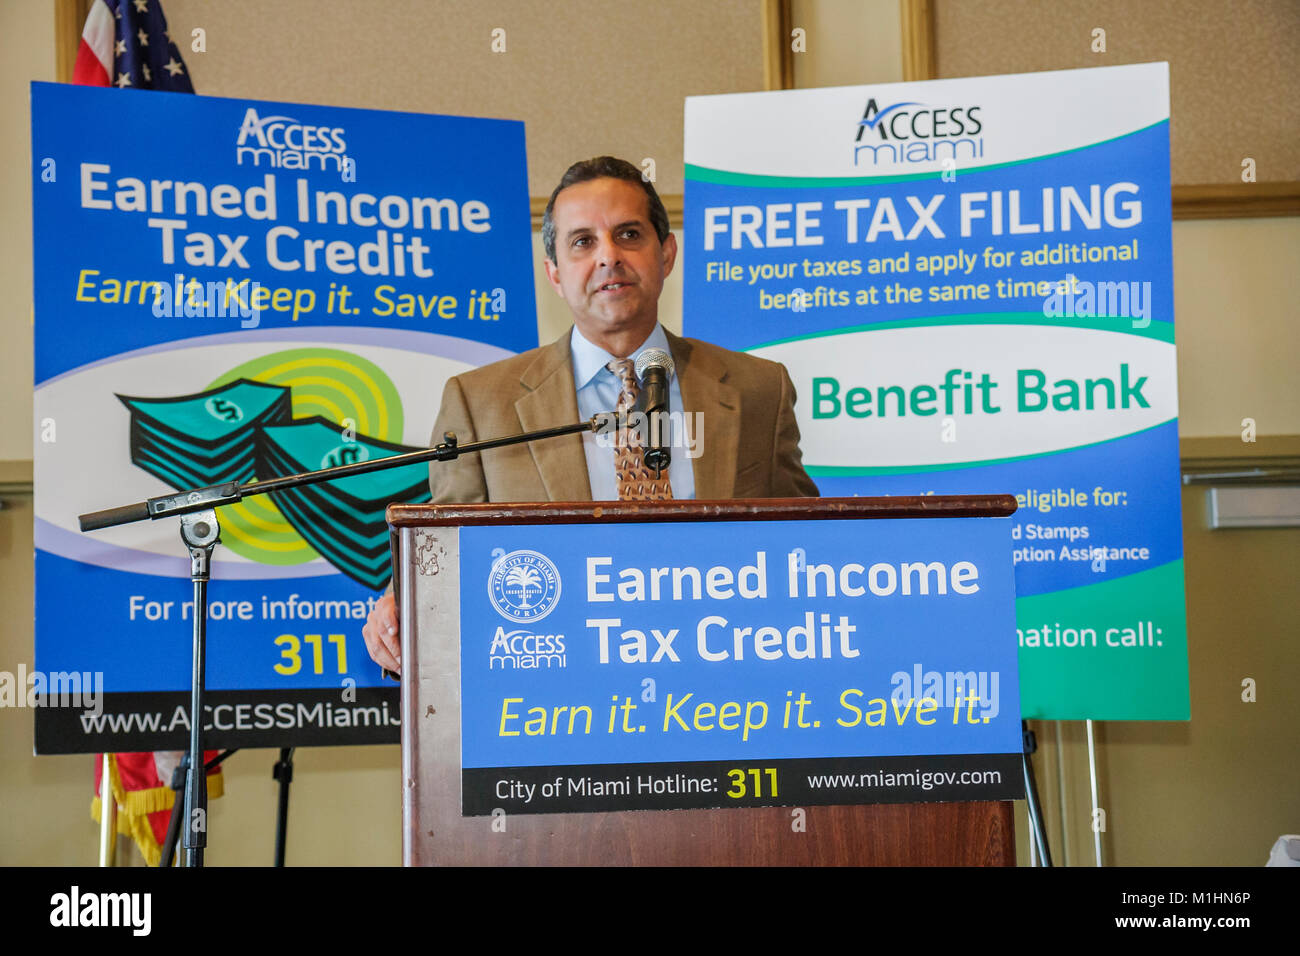 getting government contracts networking speaker man earned income tax credit Hispanic Mayor Manny Diaz - Stock Image